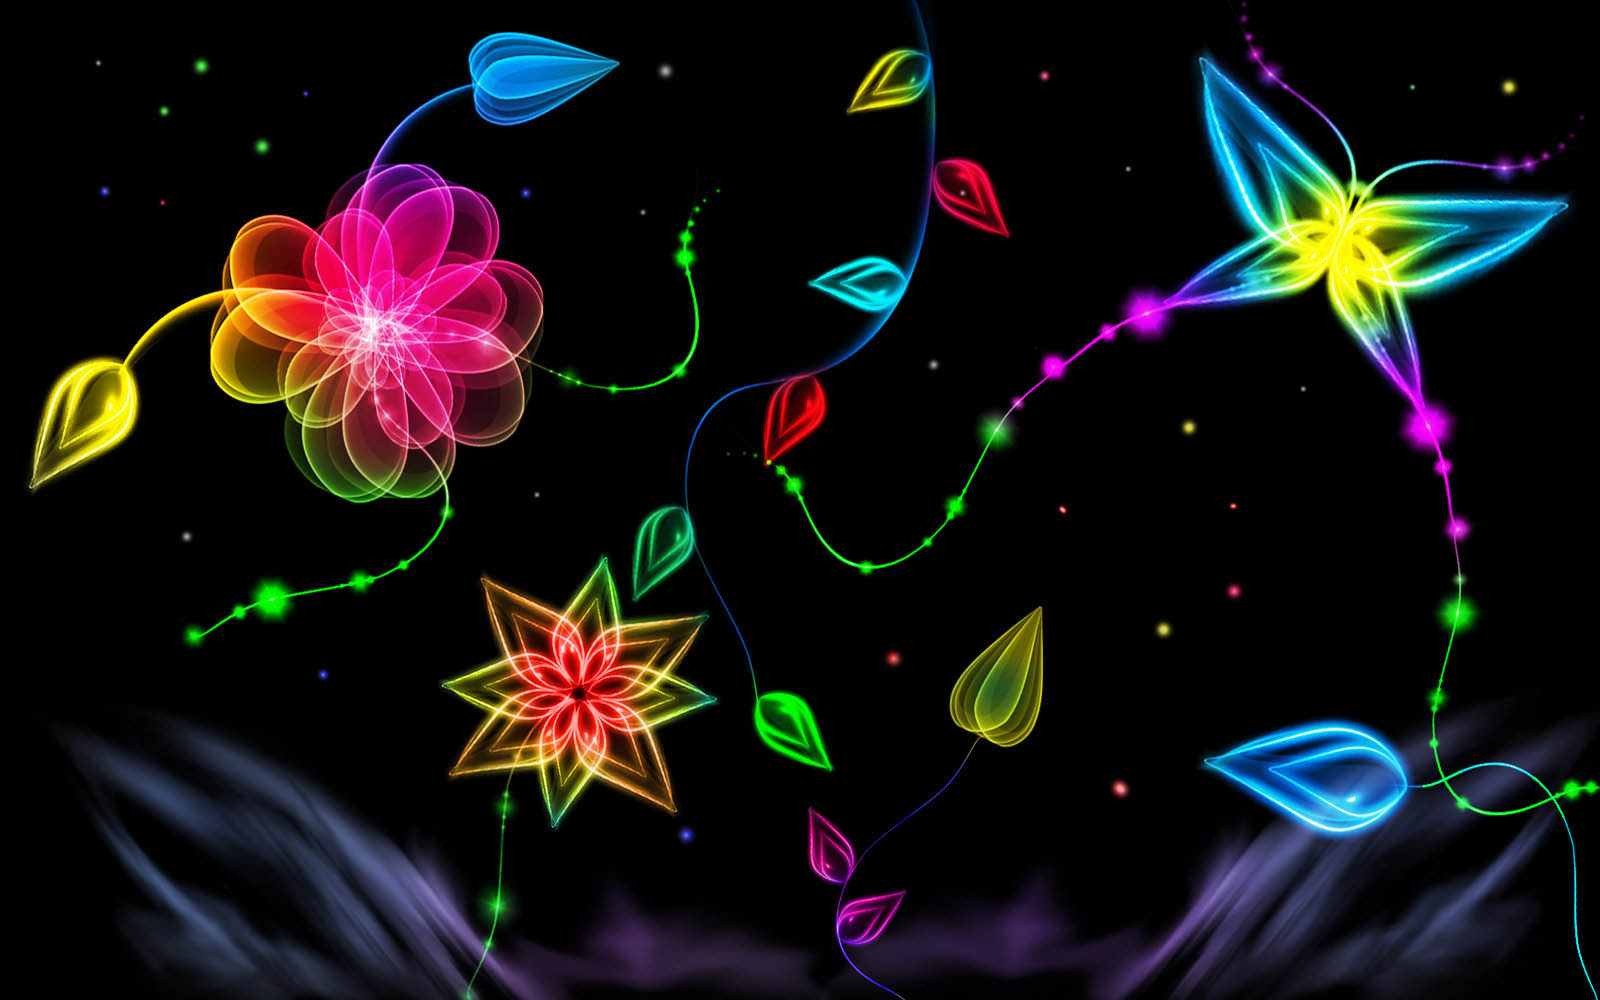 Neon Art Wallpapers Hd Wallpapers 1600x1000